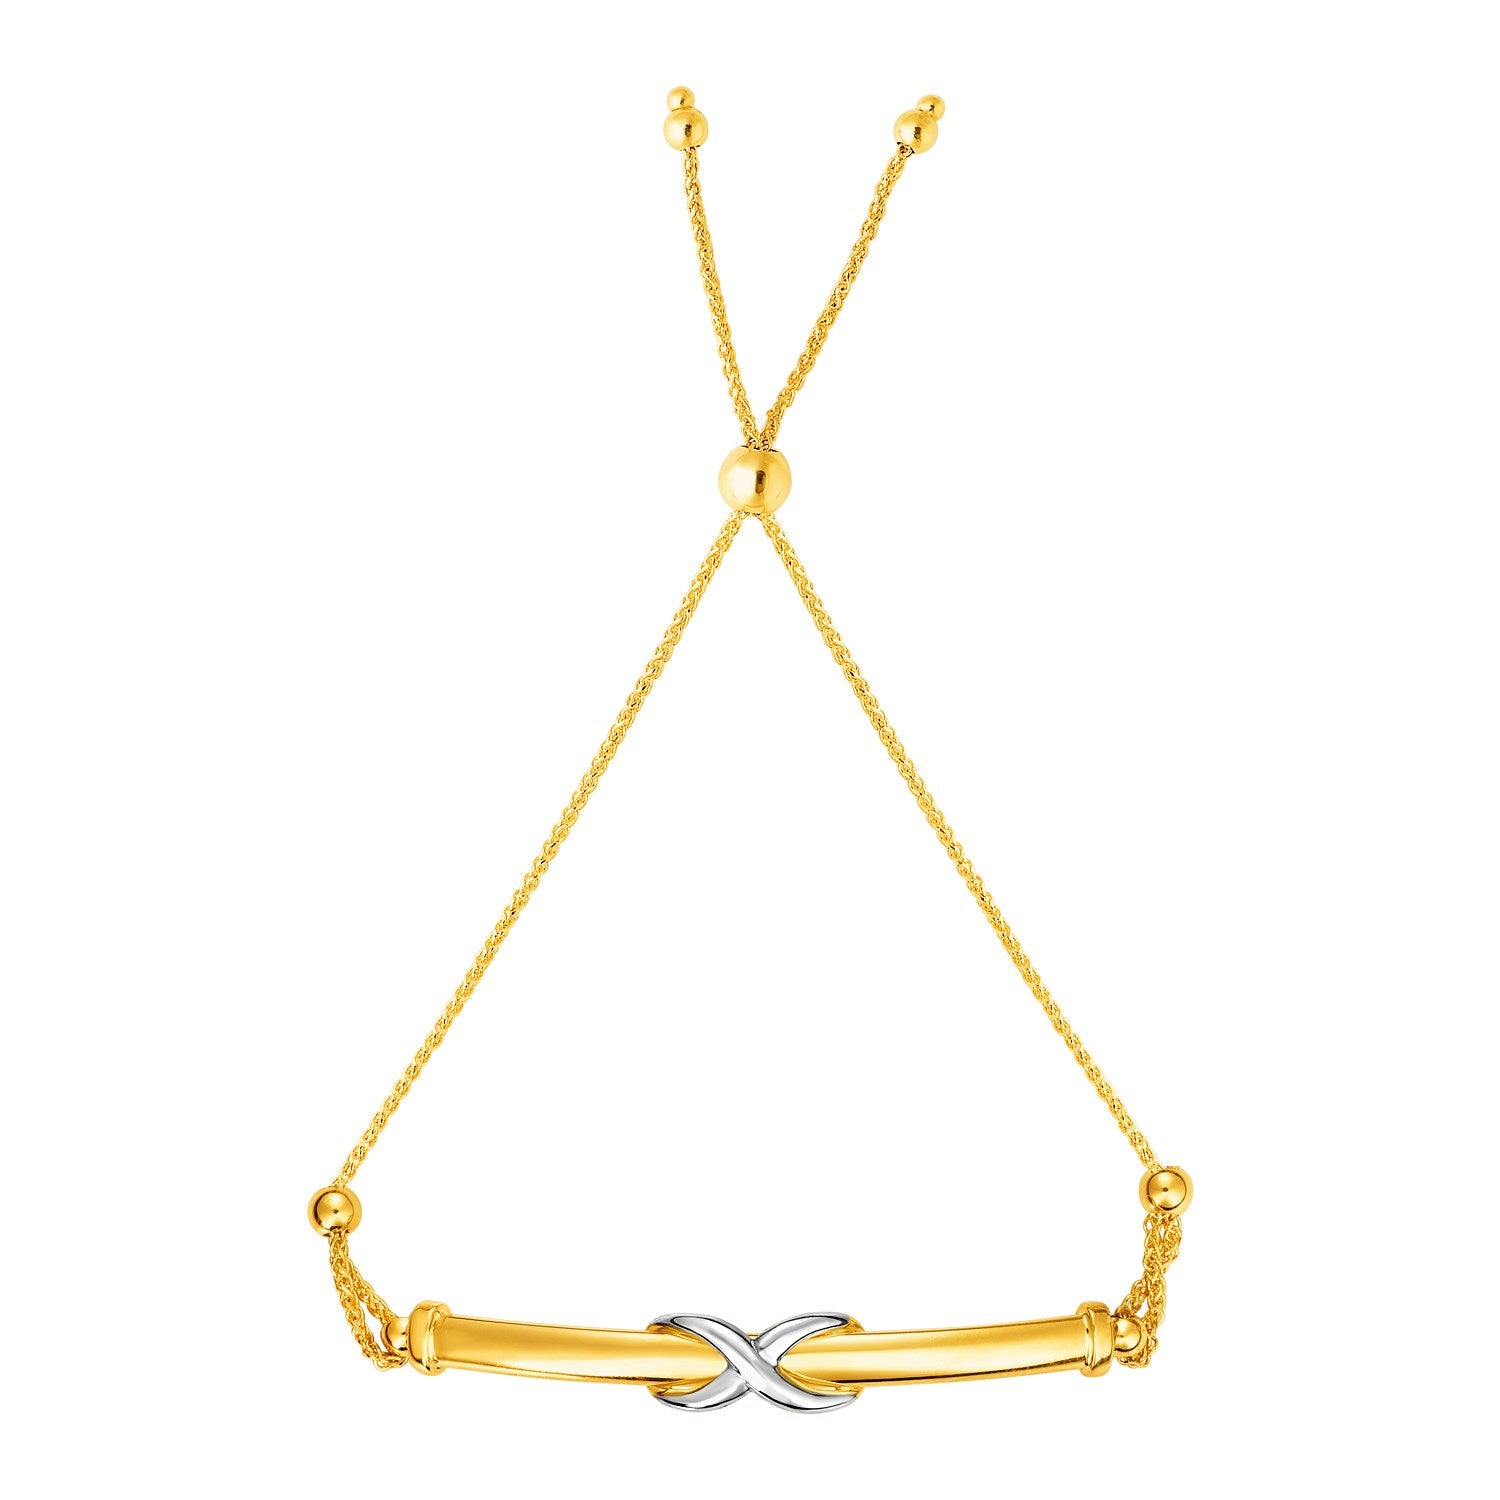 Adjustable Friendship Bracelet with Infinity Motif in 14k Yellow and White Gold